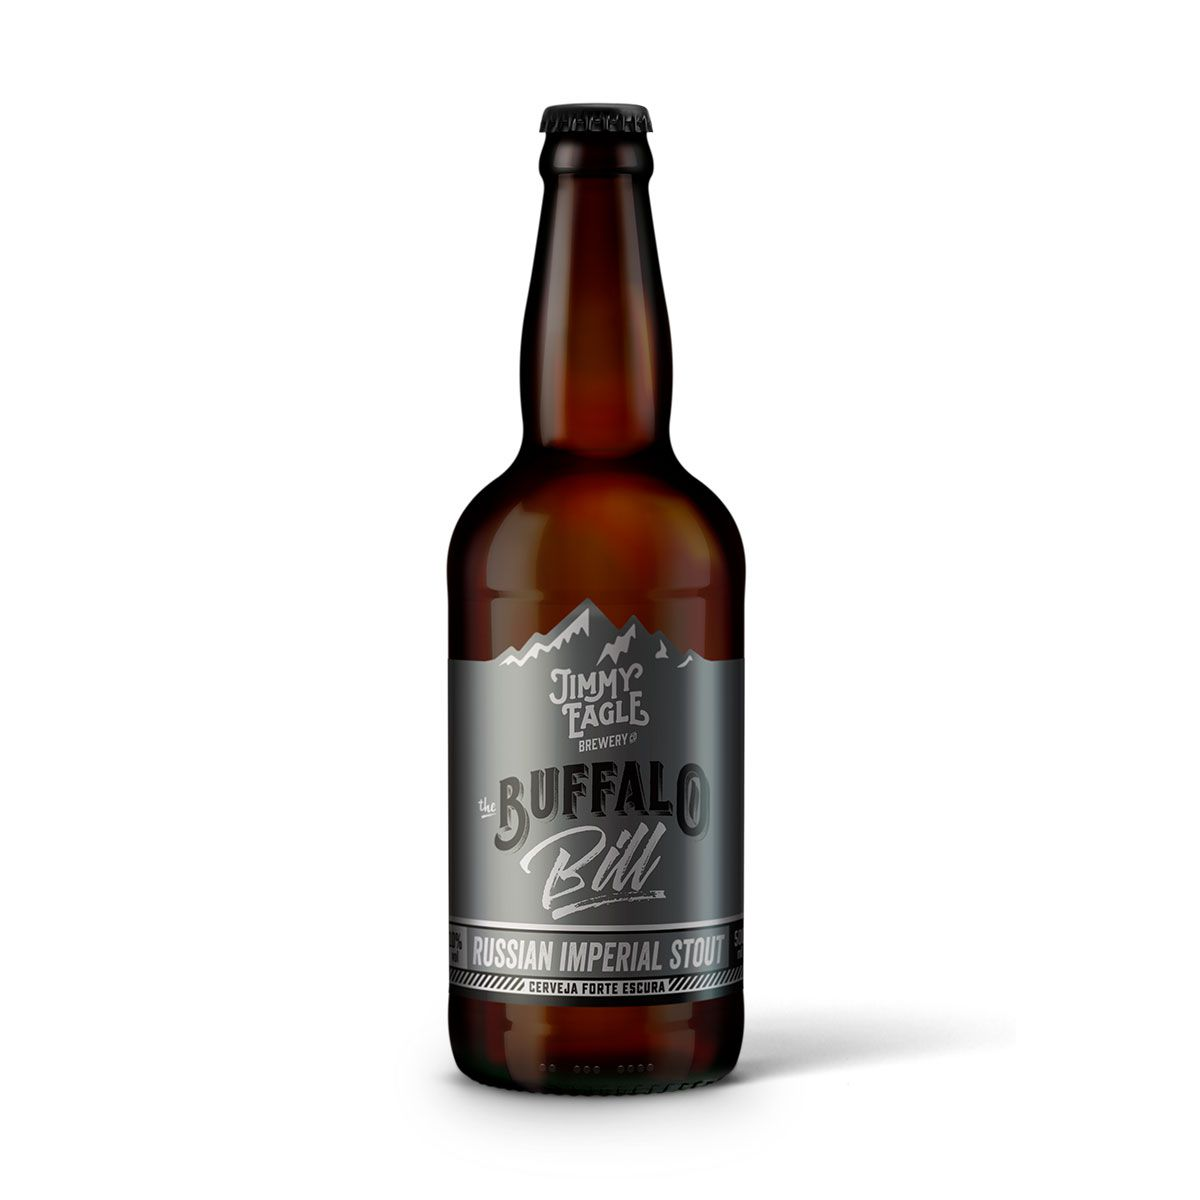 Jimmy Eagle Russian Imperial Stout Buffalo Bill 500ml